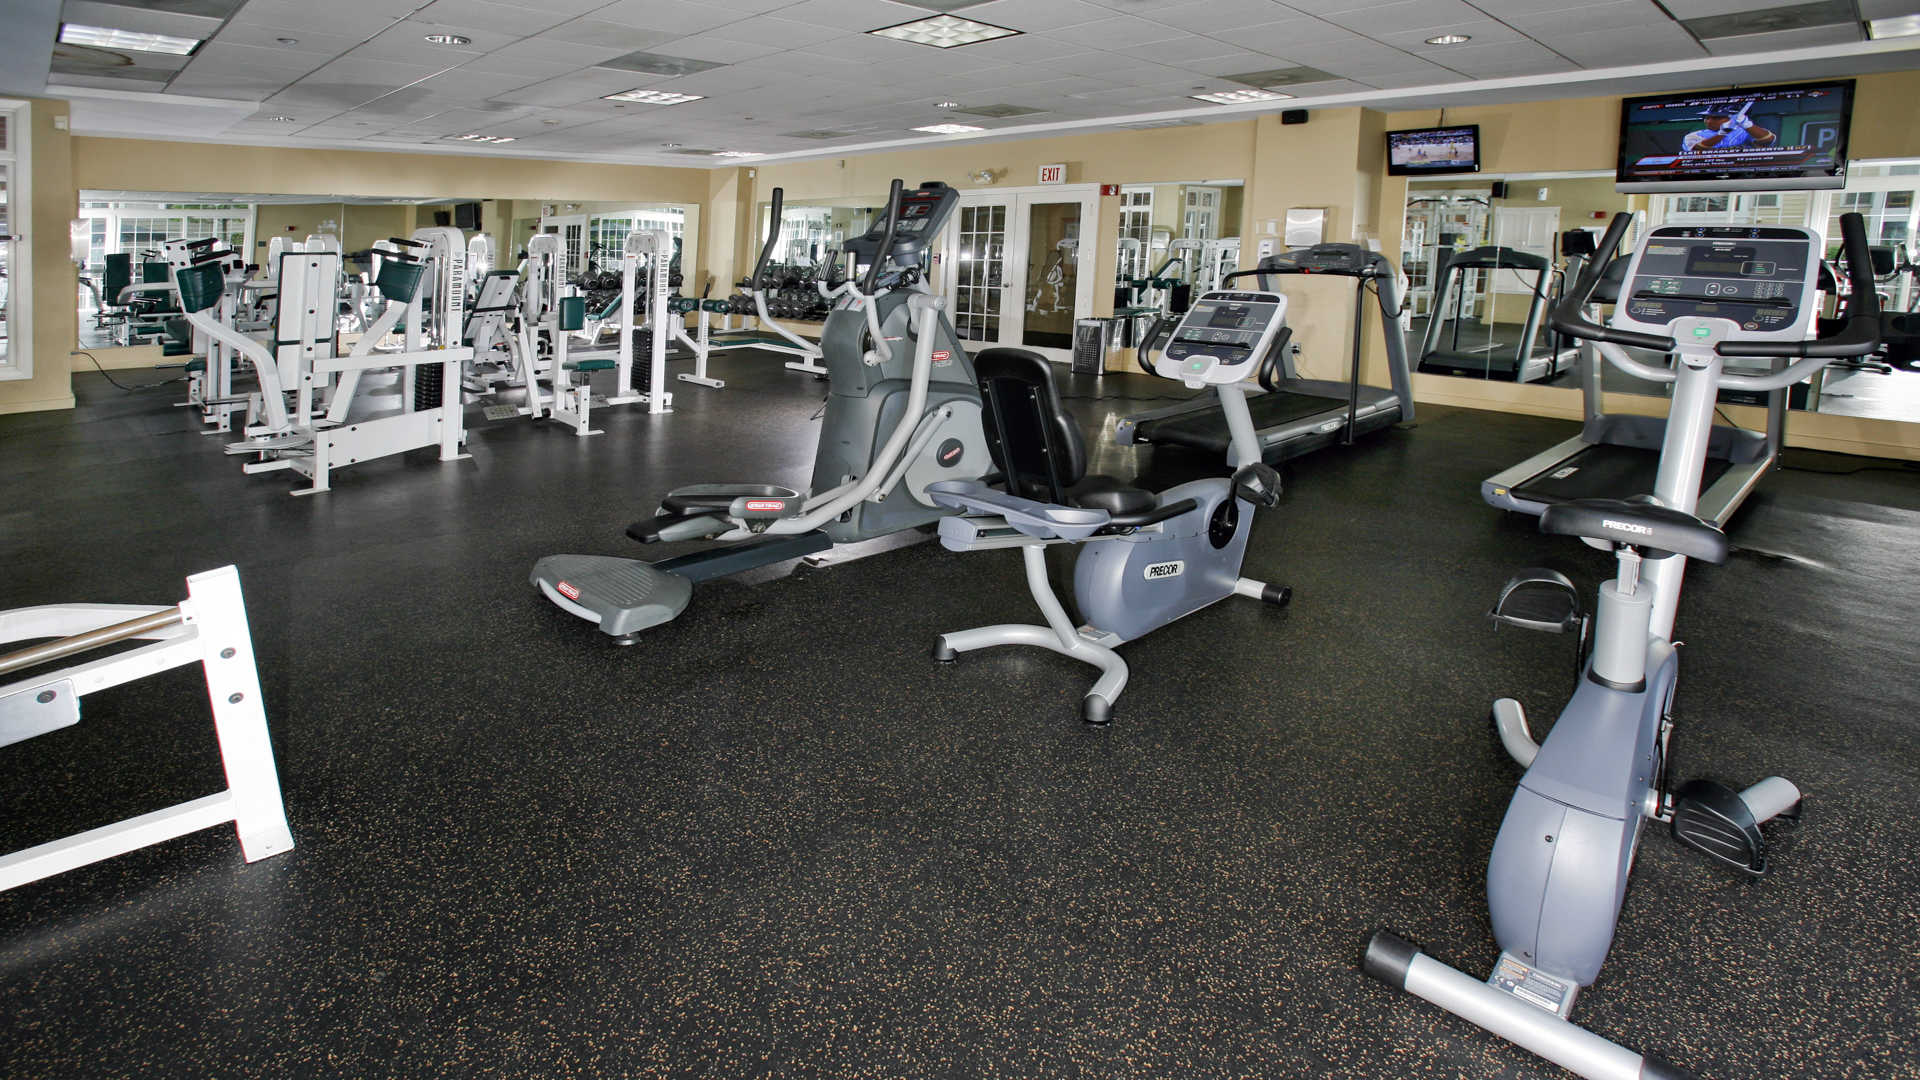 Fairfield apartments fitness center